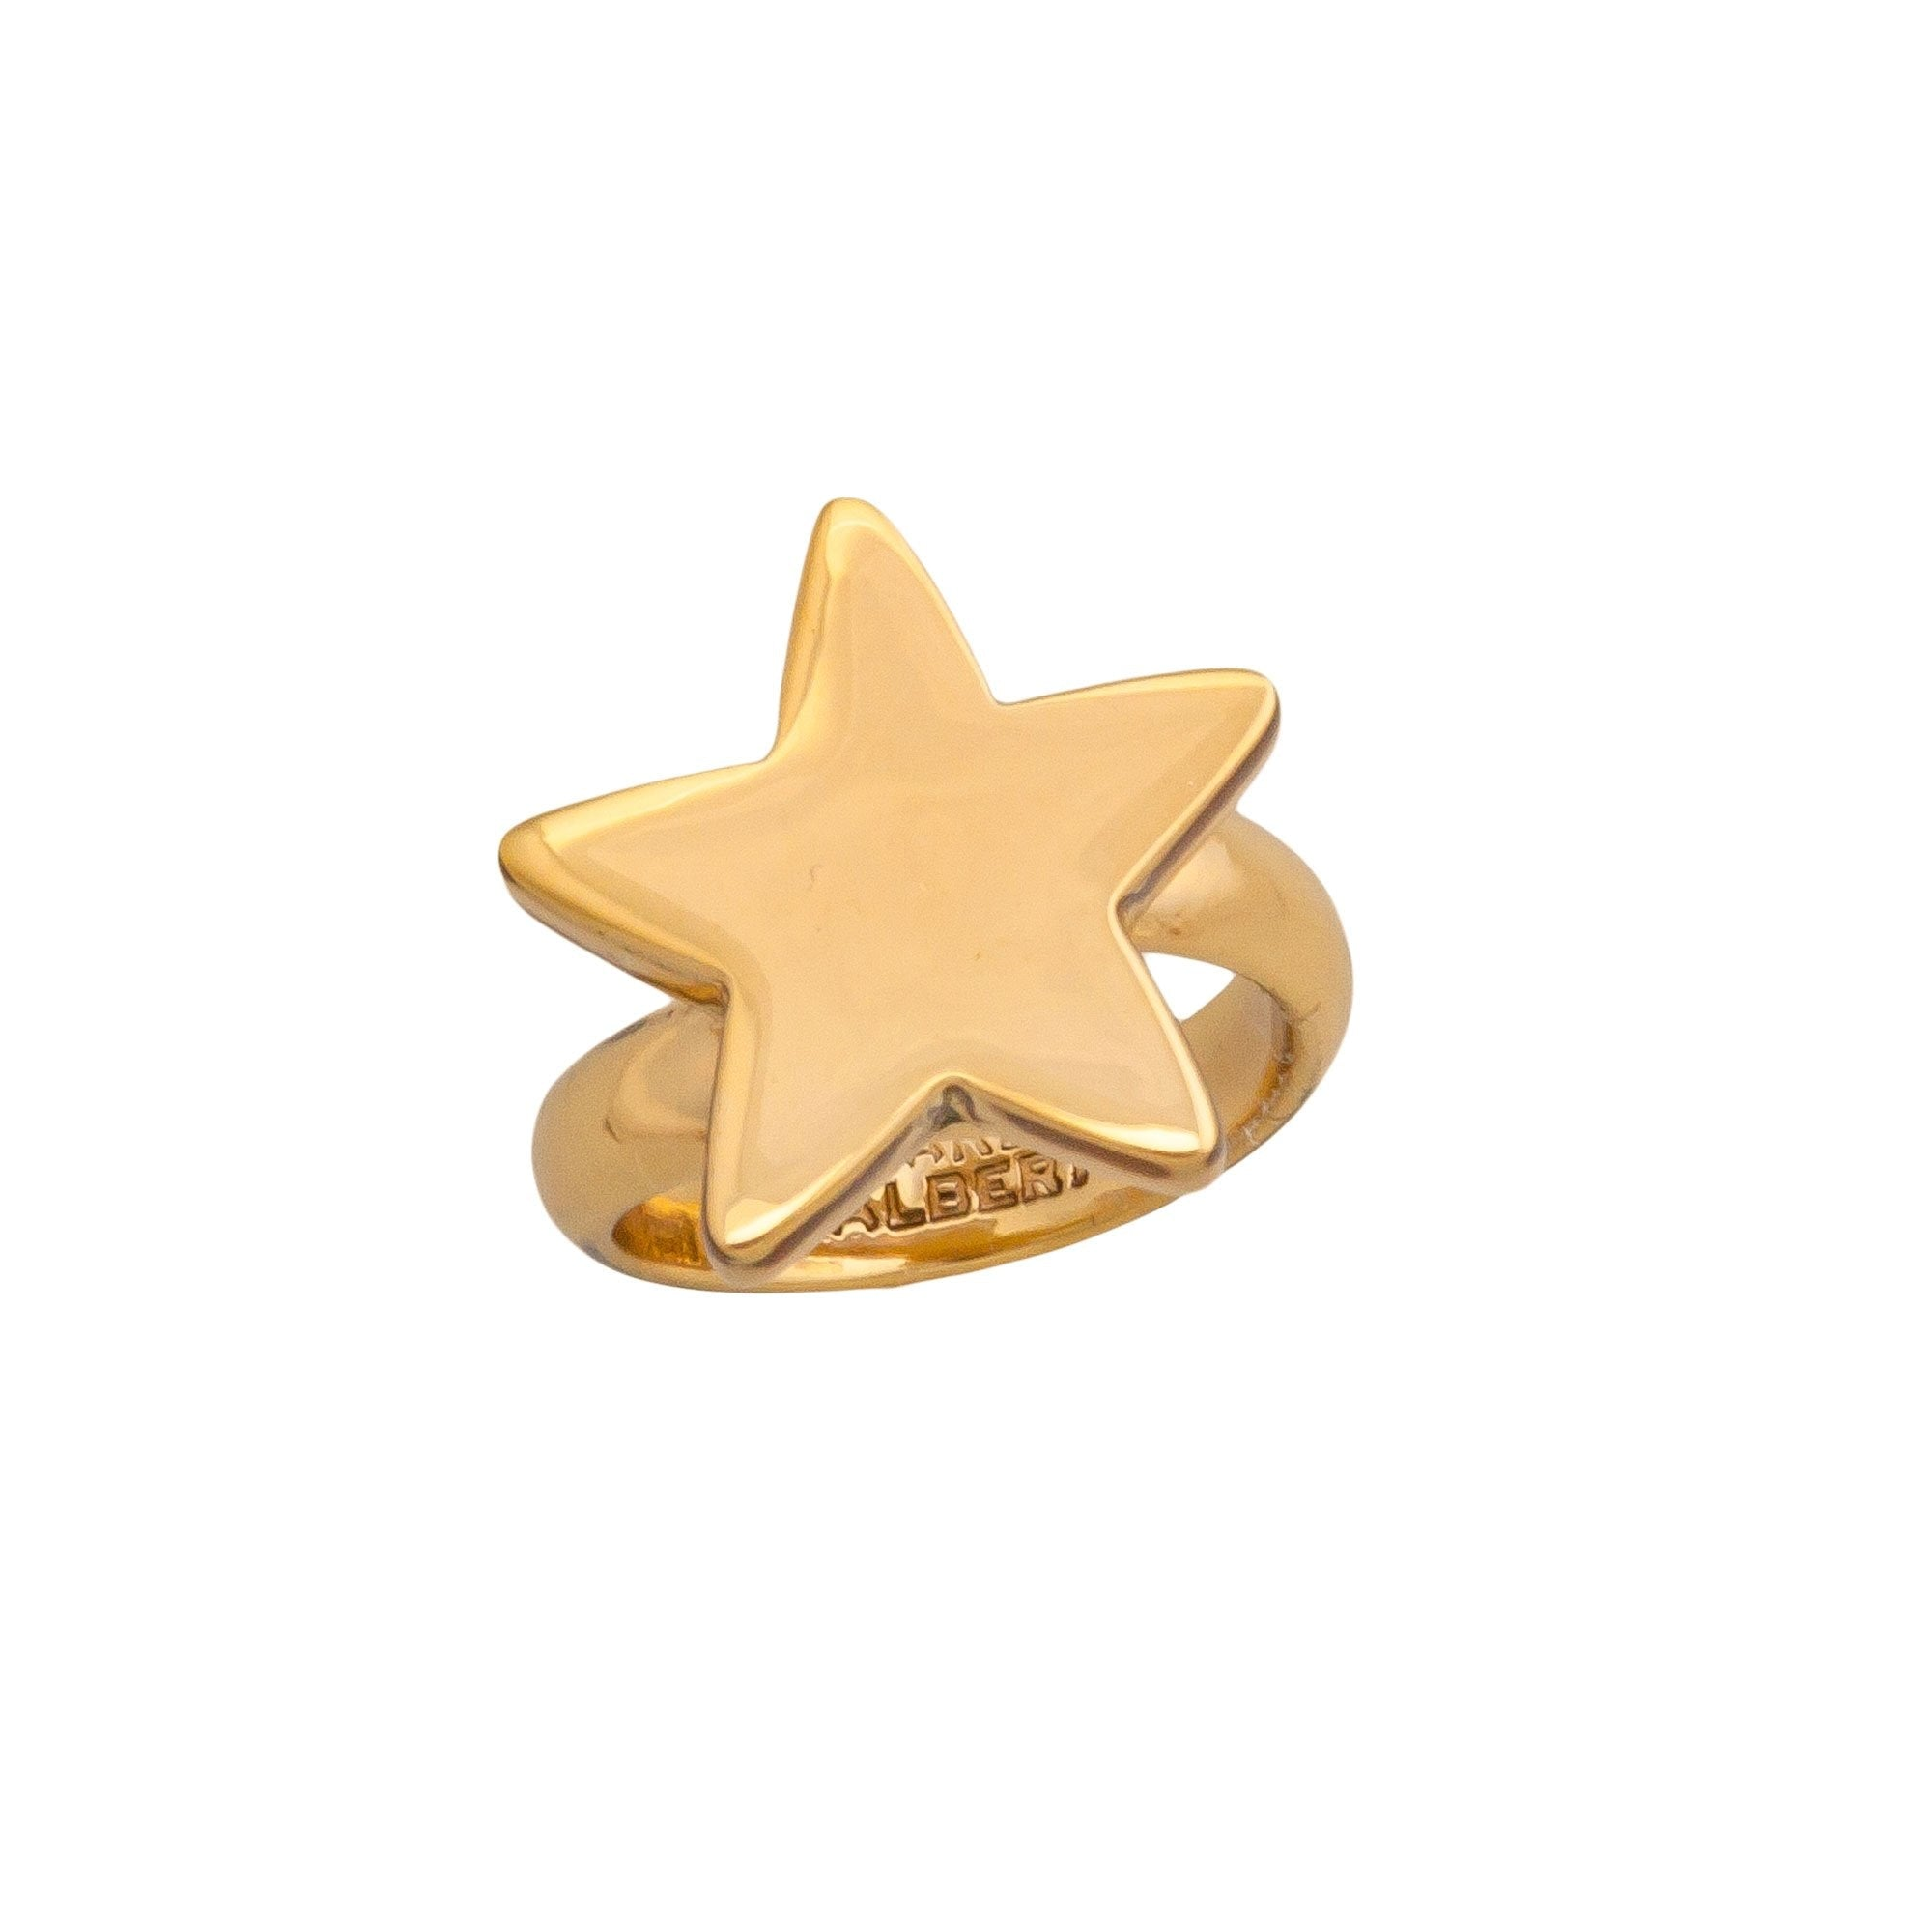 Alchemia Small Star Adjustable Ring | Charles Albert Jewelry